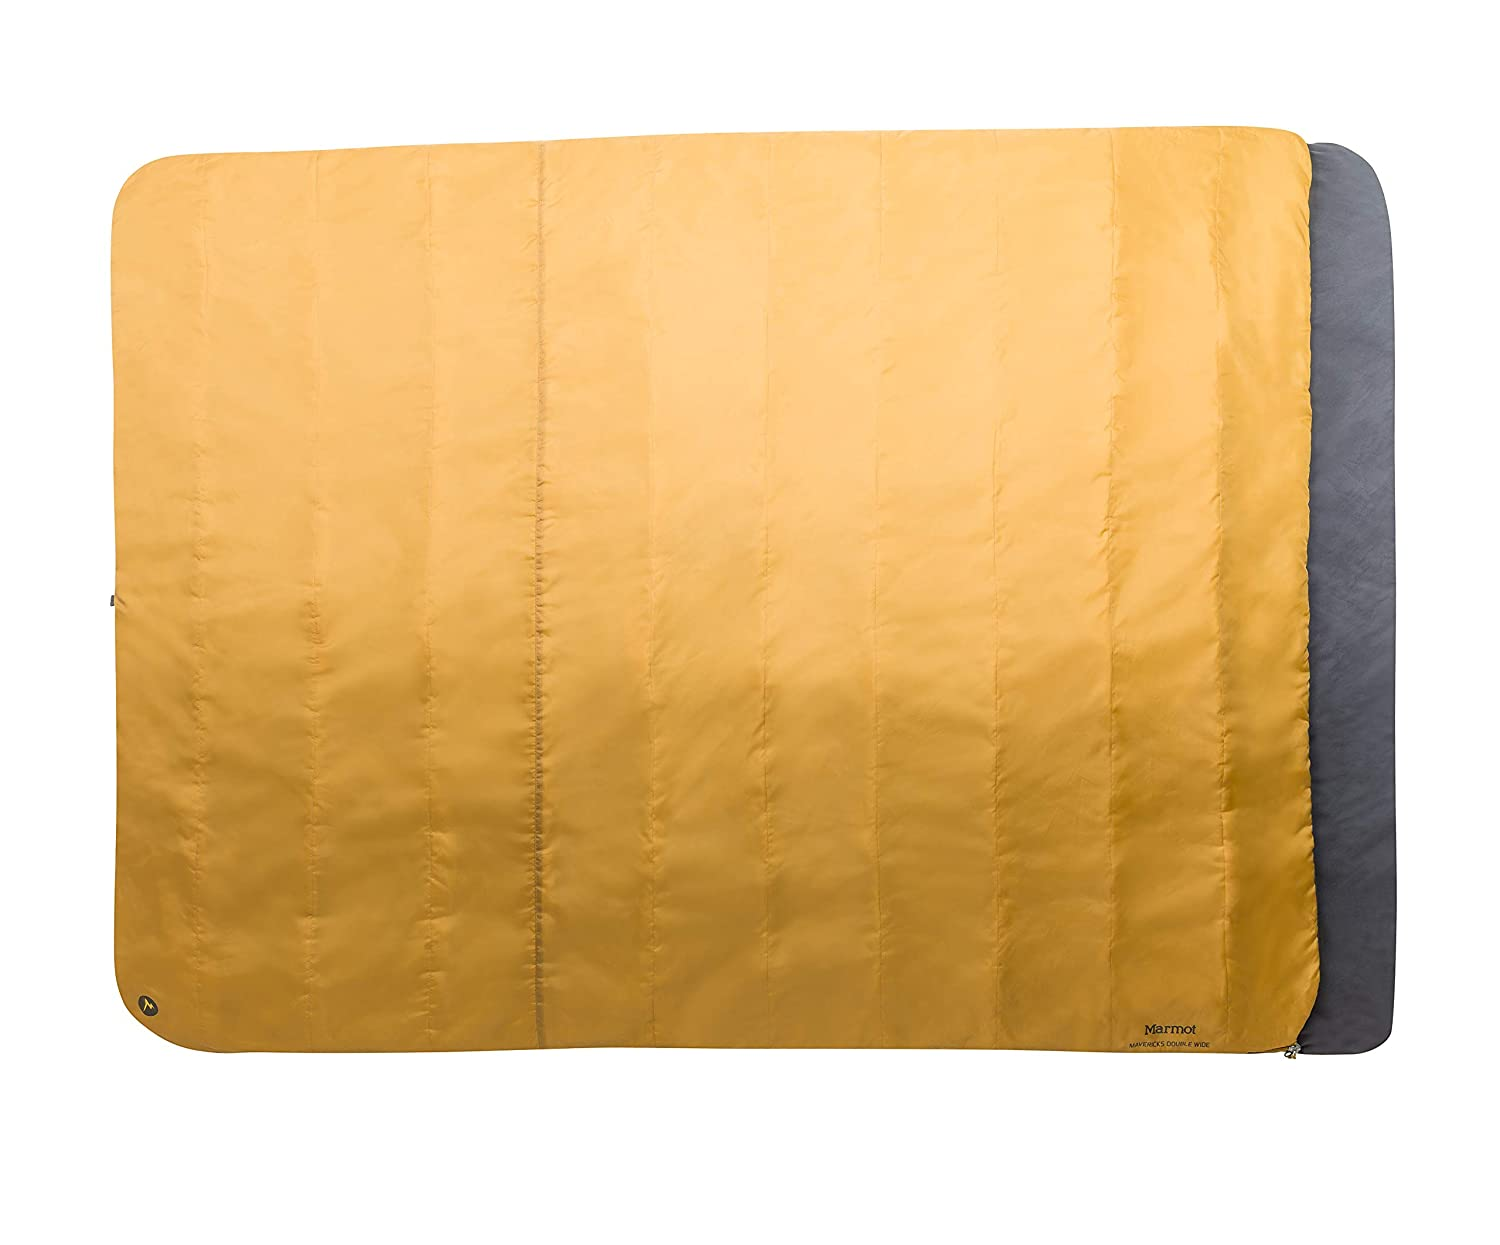 Marmot Mavericks Double Wide Sleeping Bag, Golden Copper Dark Olive, One Size